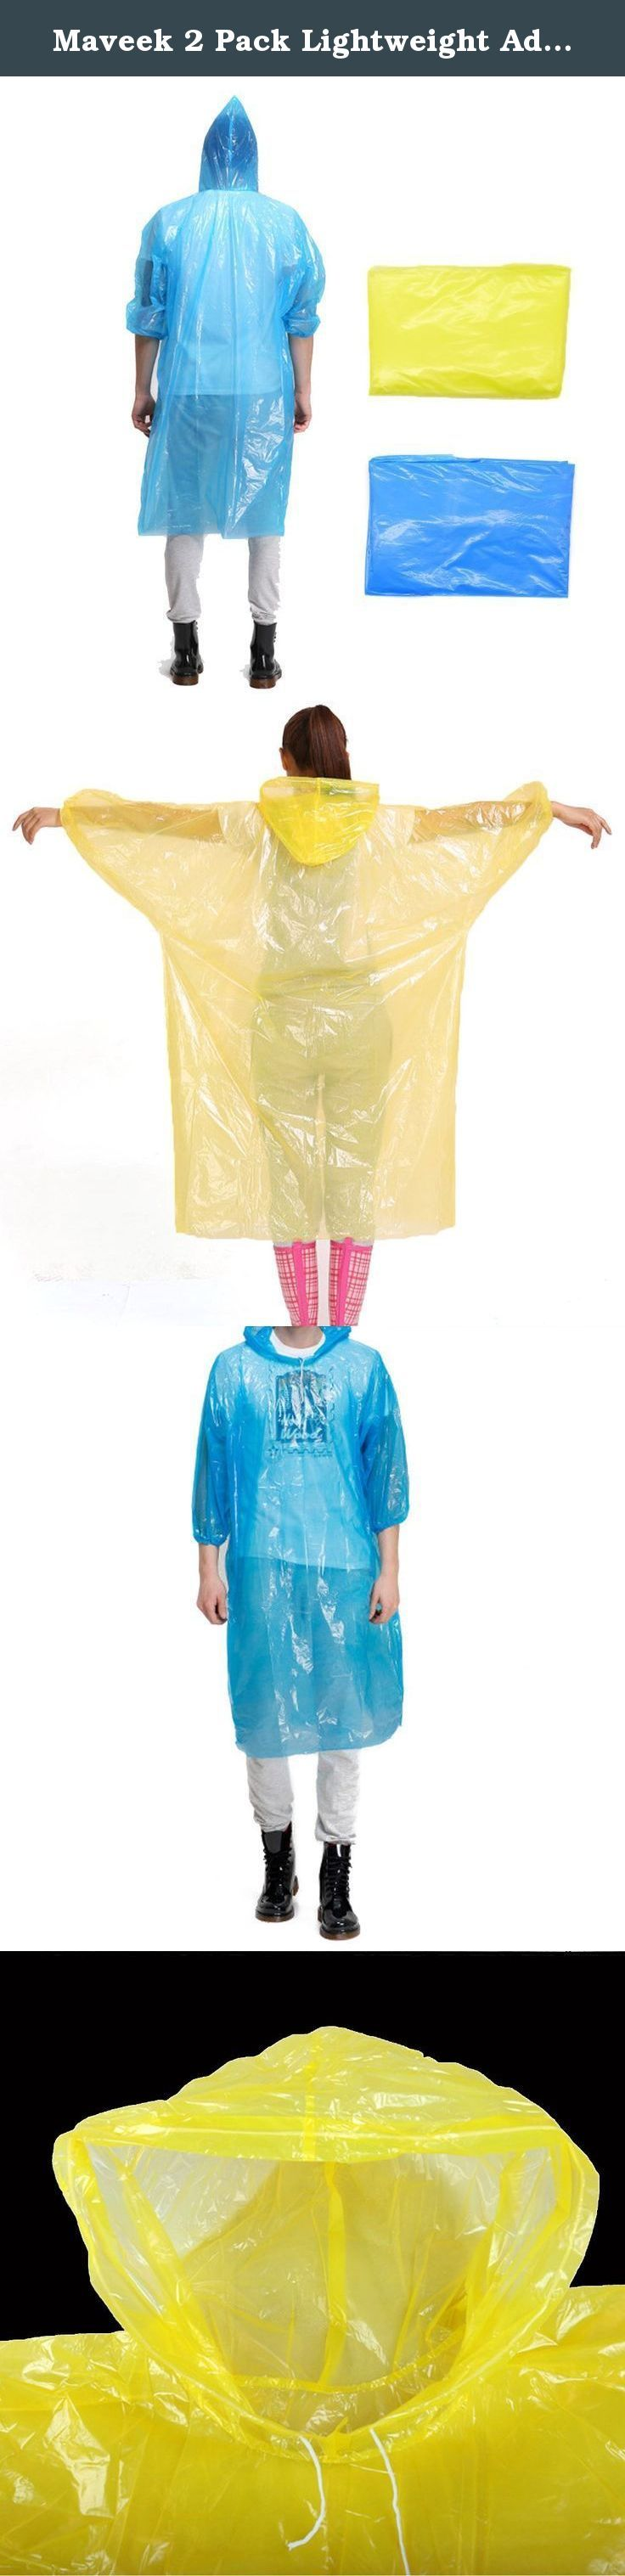 Maveek 2 Pack Lightweight Adult Emergency Hooded Raincoat disposable rain poncho For Festivals, Camping, Theme Parks (Blue+Yellow). Features: 1.Hat rope design, rope can be stretched to prevent rainwater from entering, gives you more care. 2.The arms have a light elastic band which is great for keeping the poncho off your hands and helps to make it fit. 3.Big size of the hat was designed to protect the head does not rain wet. 4.Unisex plastic disposable raincoat, ideal for events, parties...